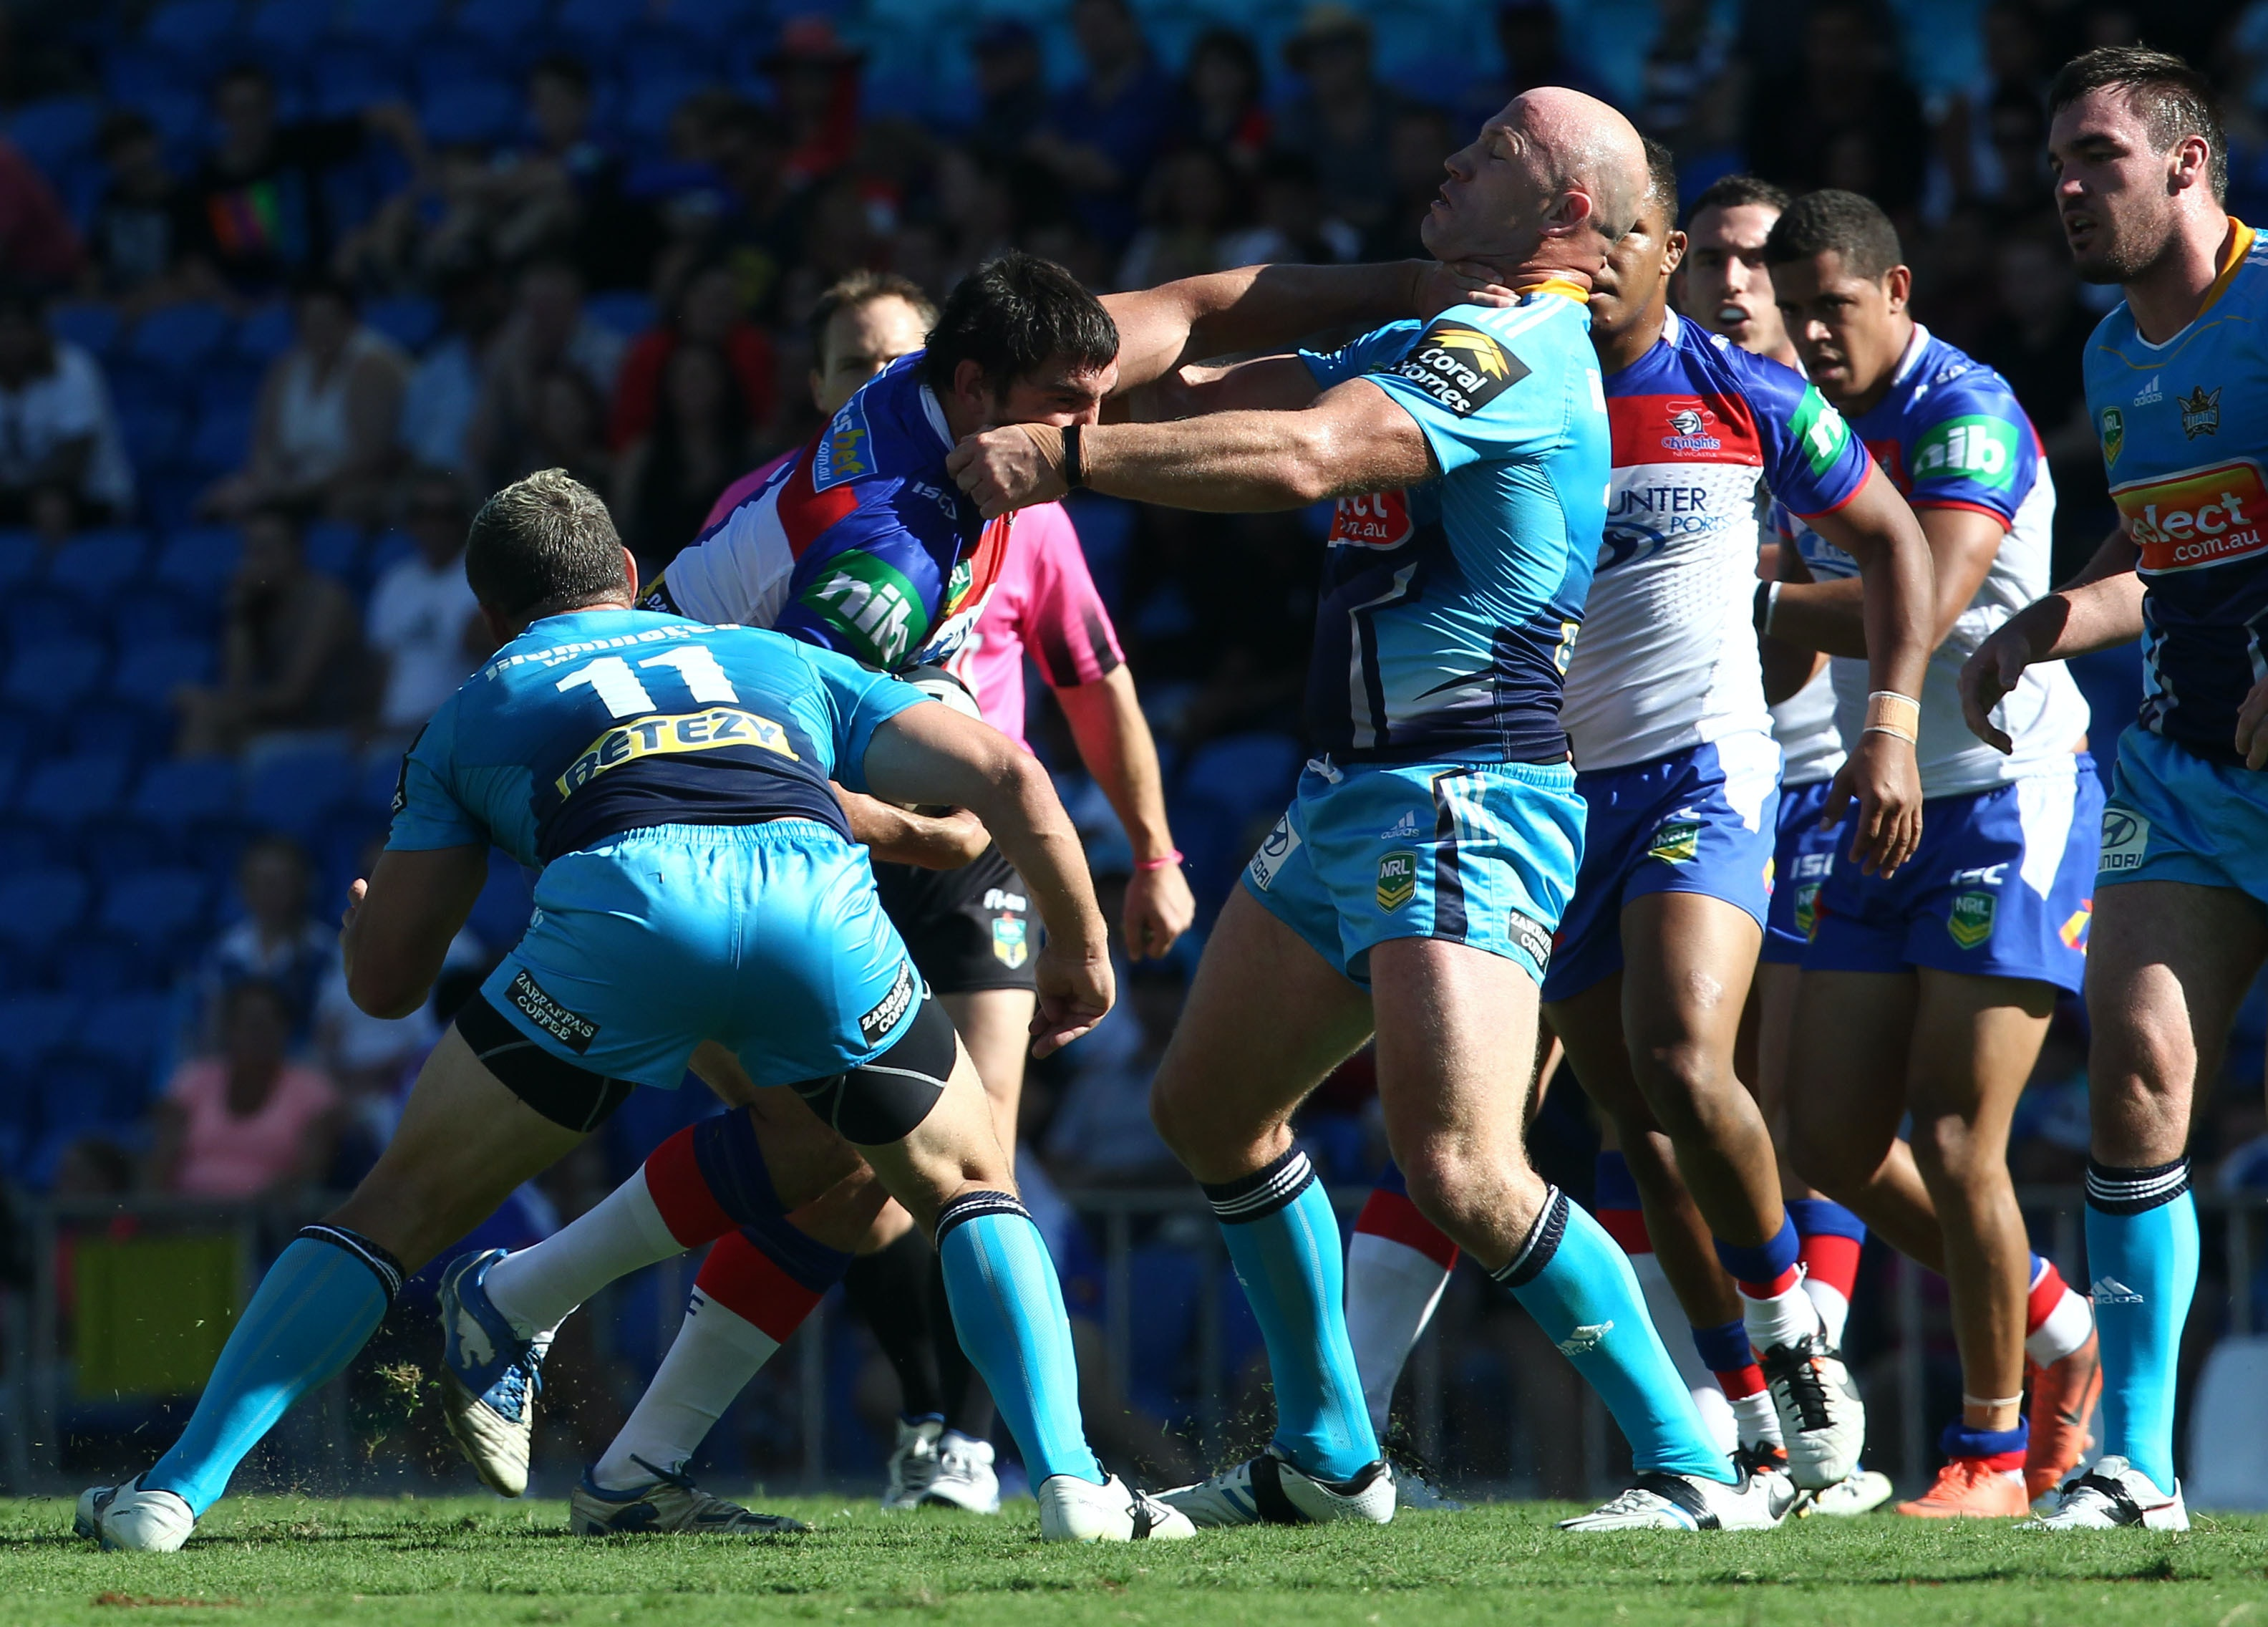 Masculinity and violence: the men who play rugby league